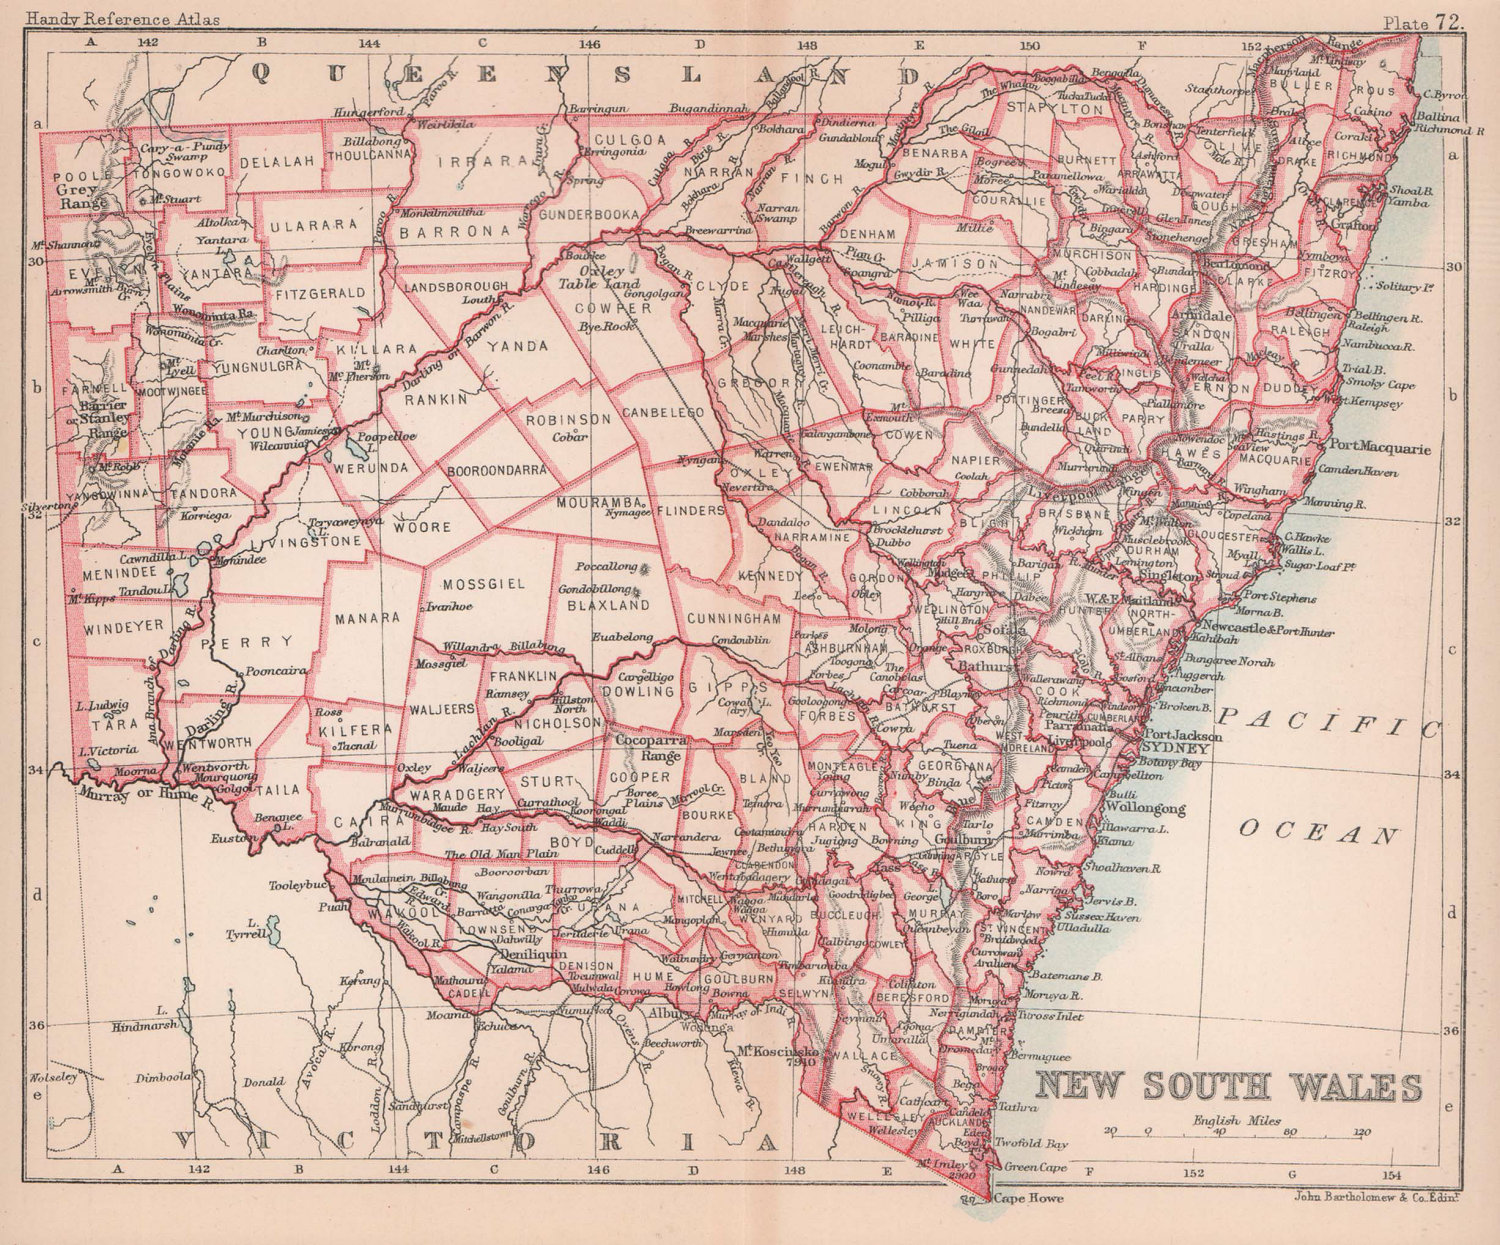 New South Wales in counties. BARTHOLOMEW 1893 old antique map plan chart